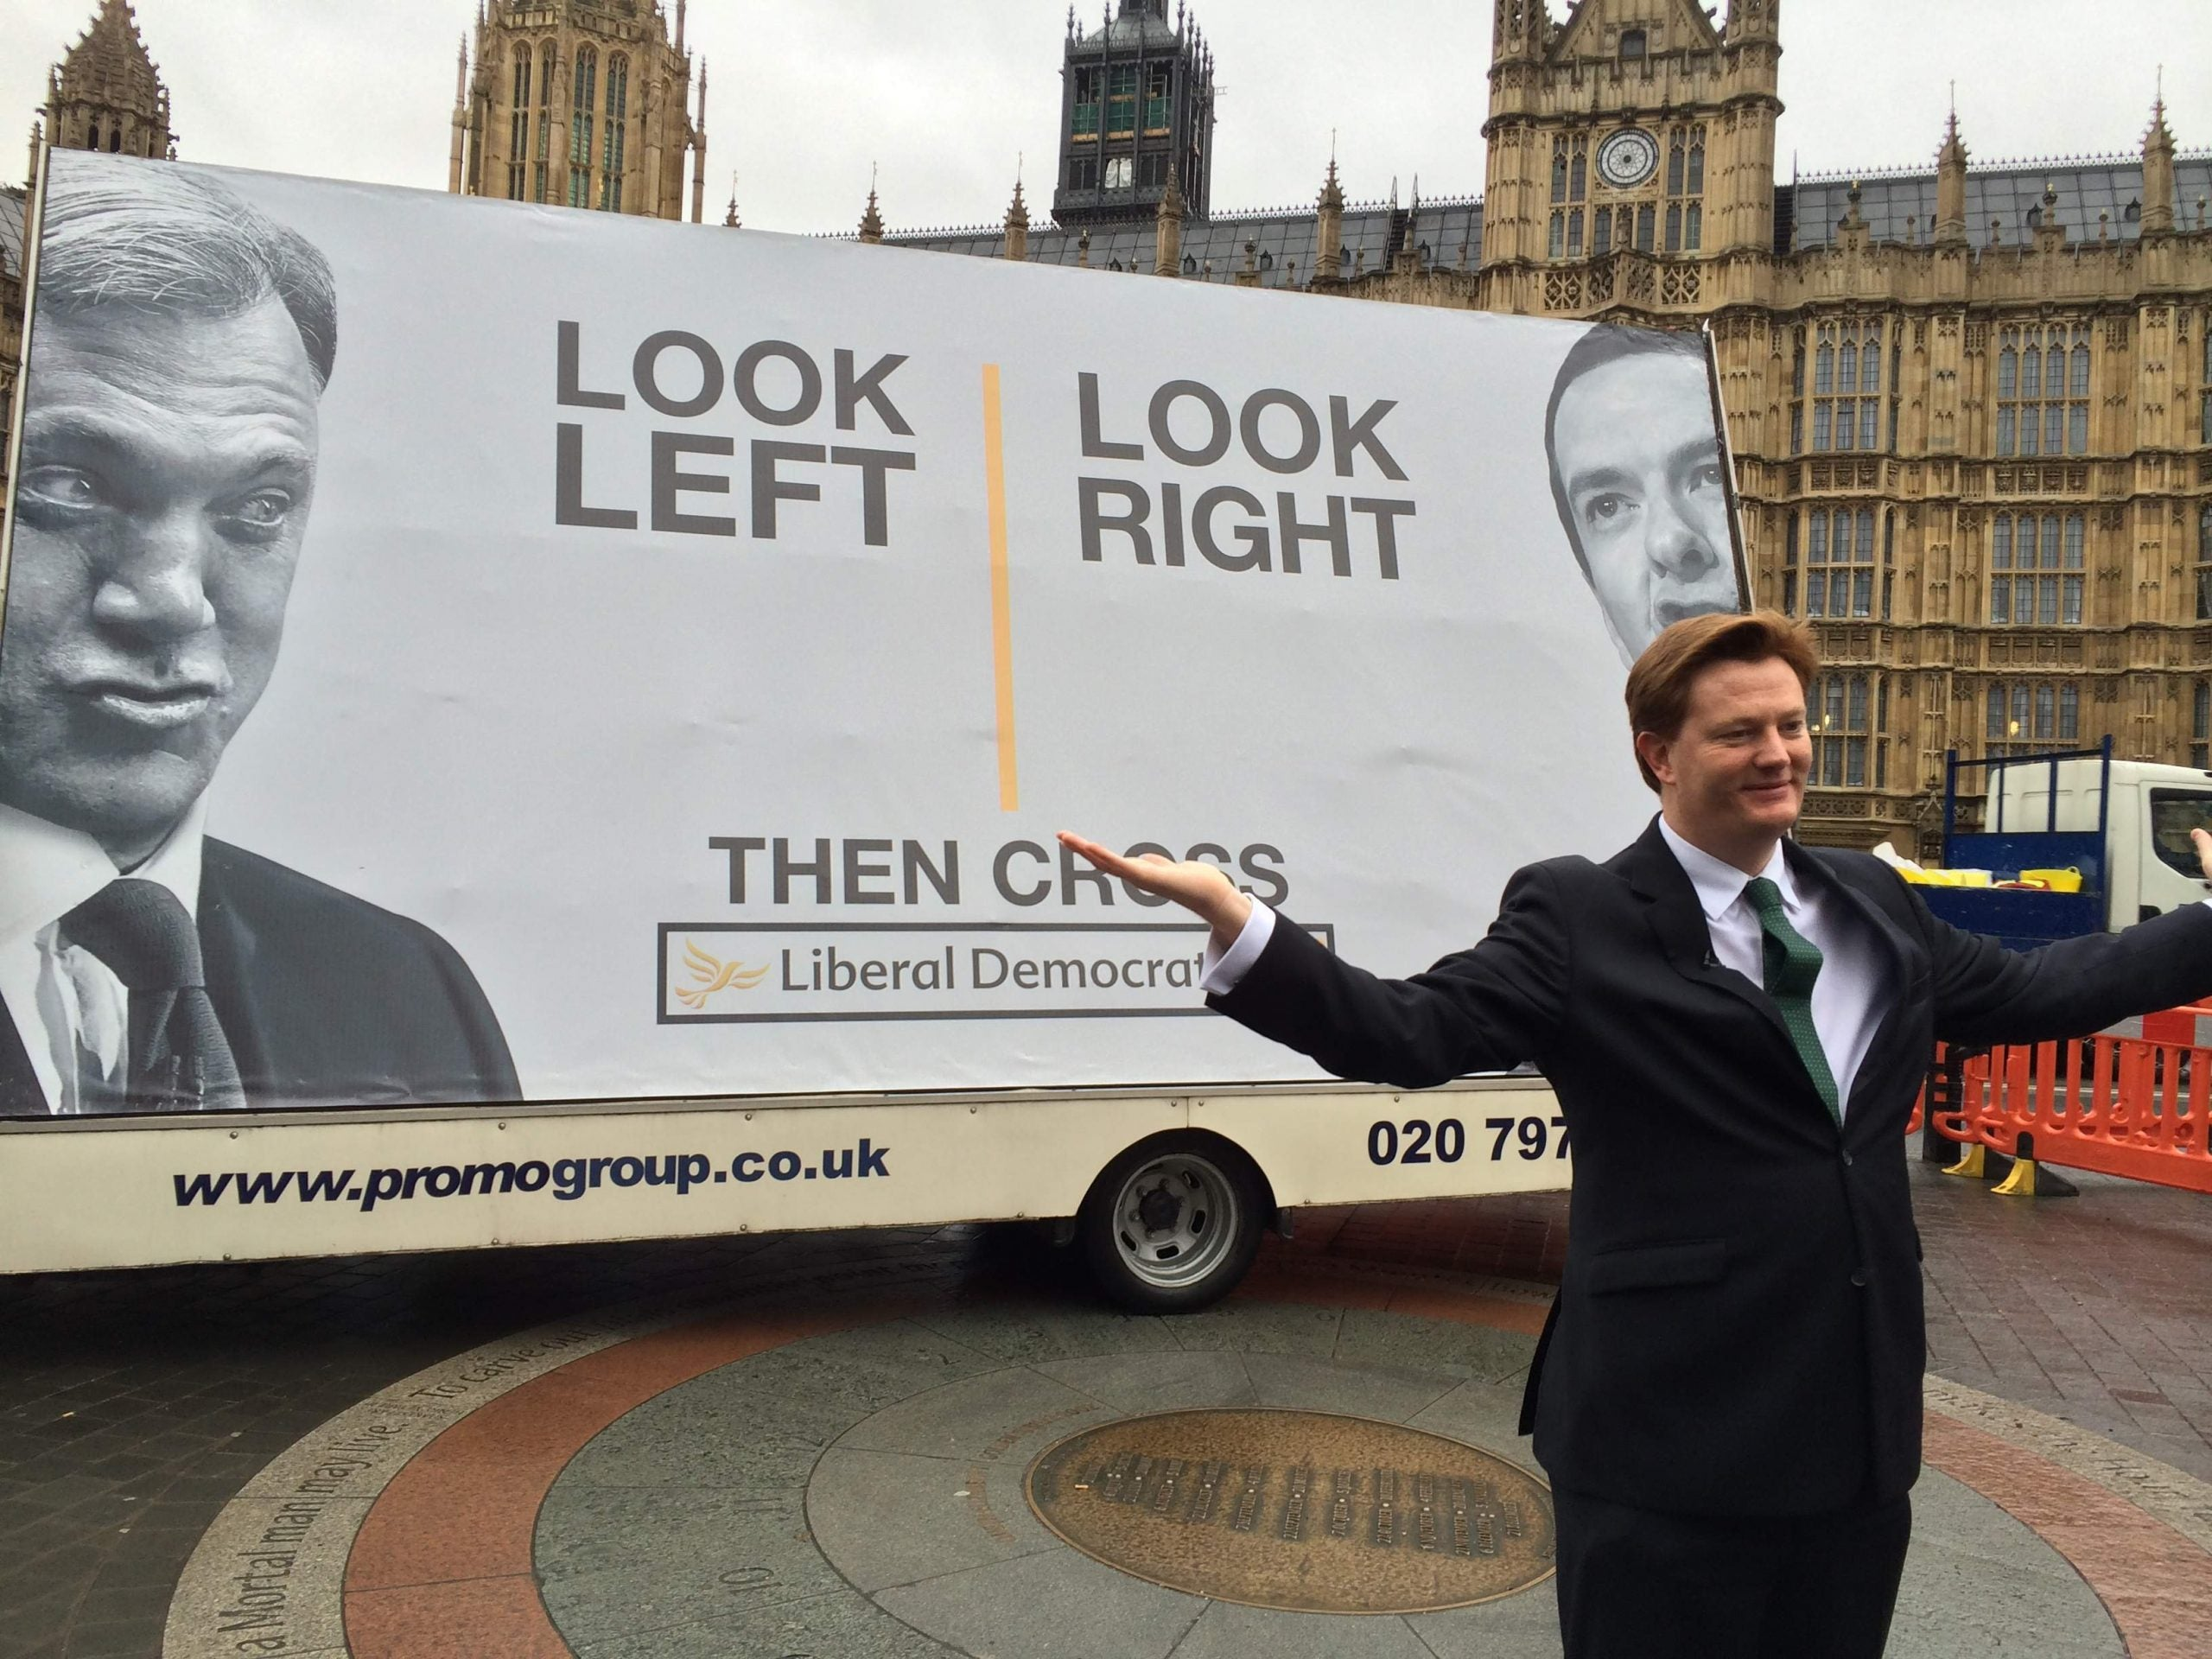 Lib Dems unveil their first election poster - at 8.20am, in the rain